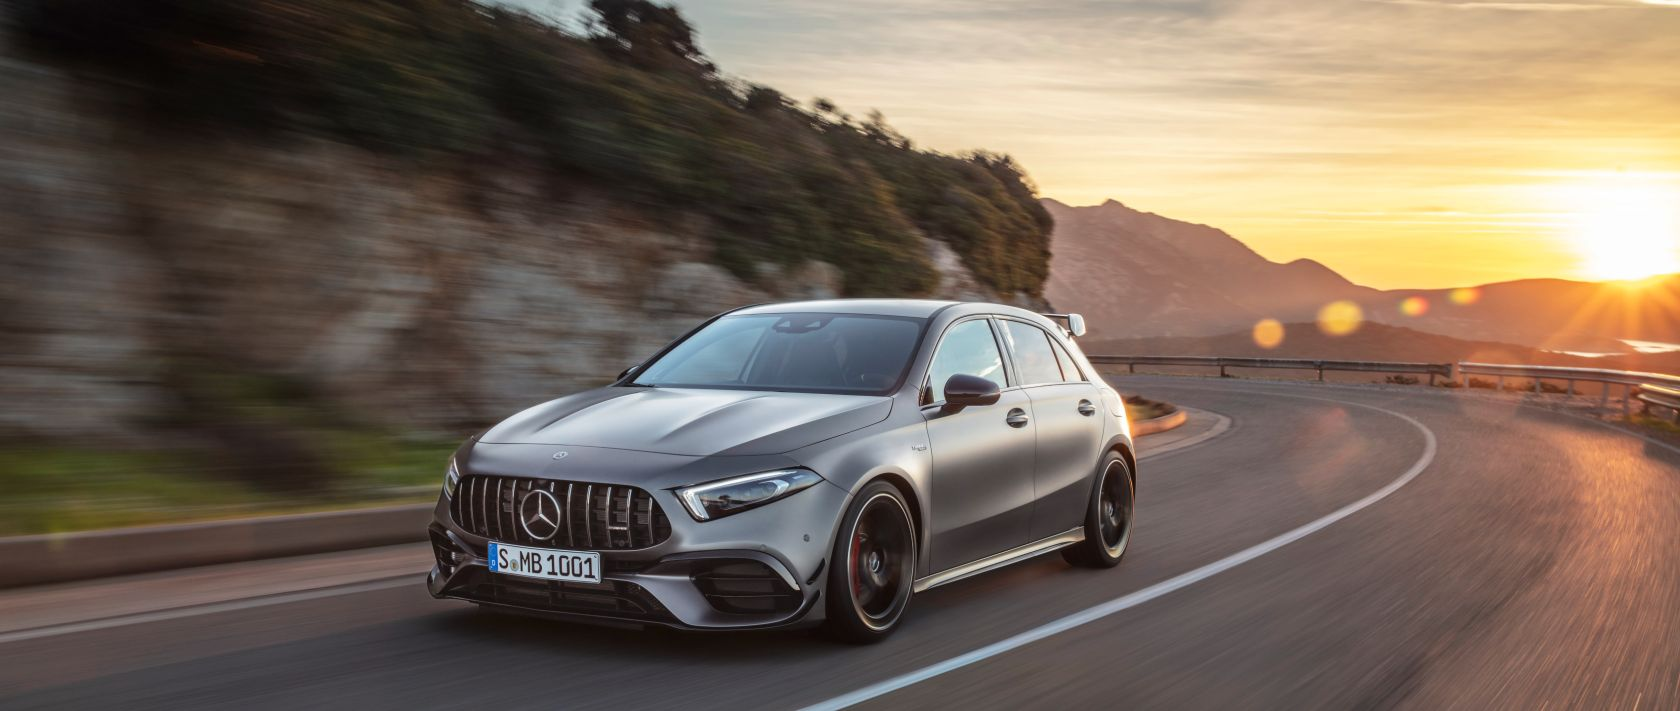 The new 2020 Mercedes-AMG A 45 4MATIC+ (W 177) in designo mountain grey magno on a country road during sunset.